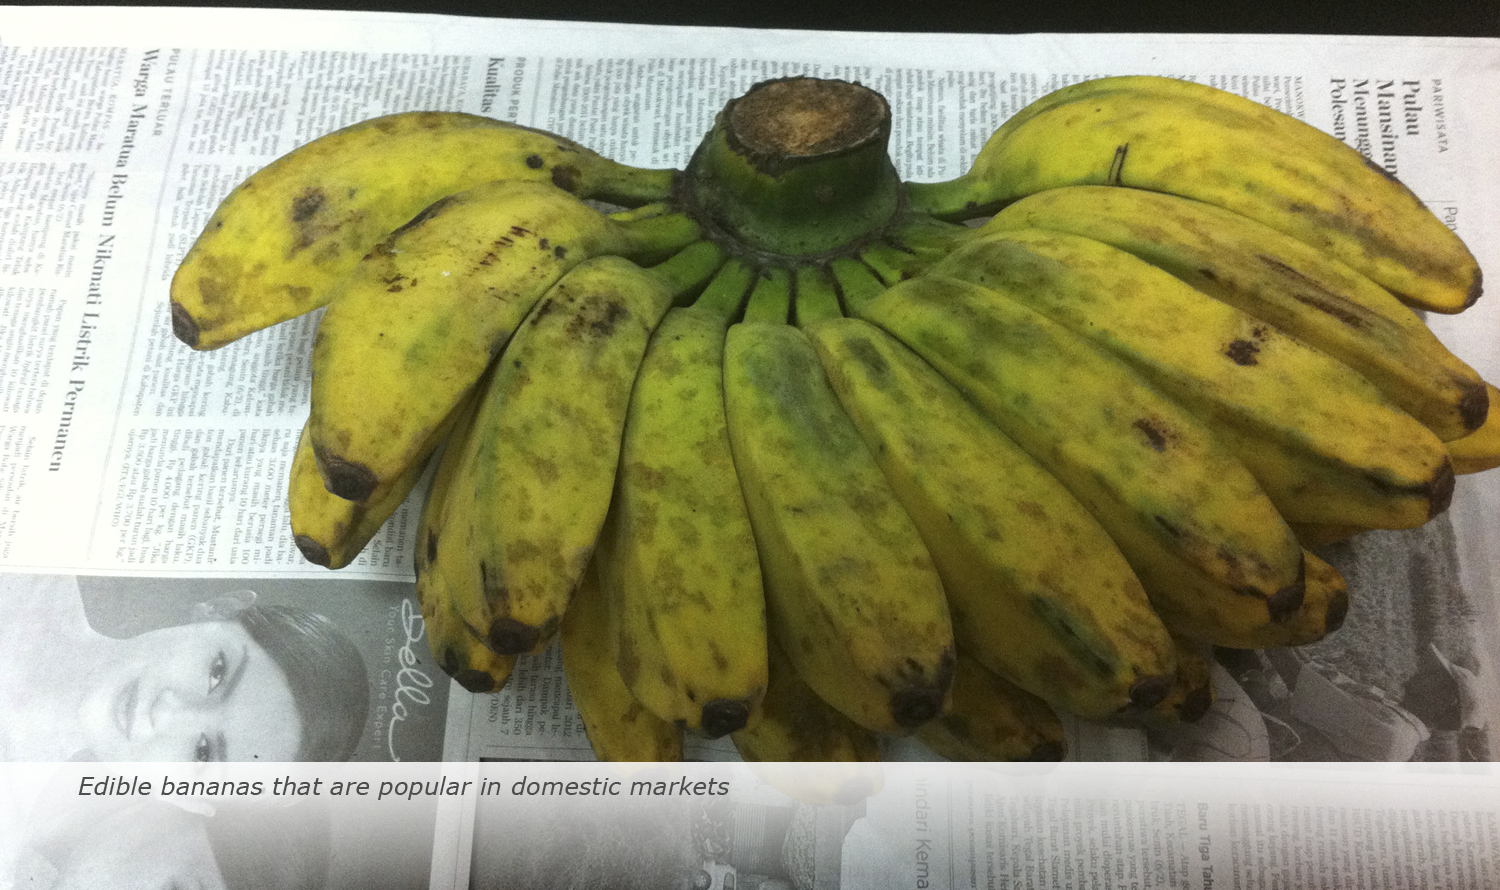 Info & Facts: Edible bananas that are popular in domestic markets